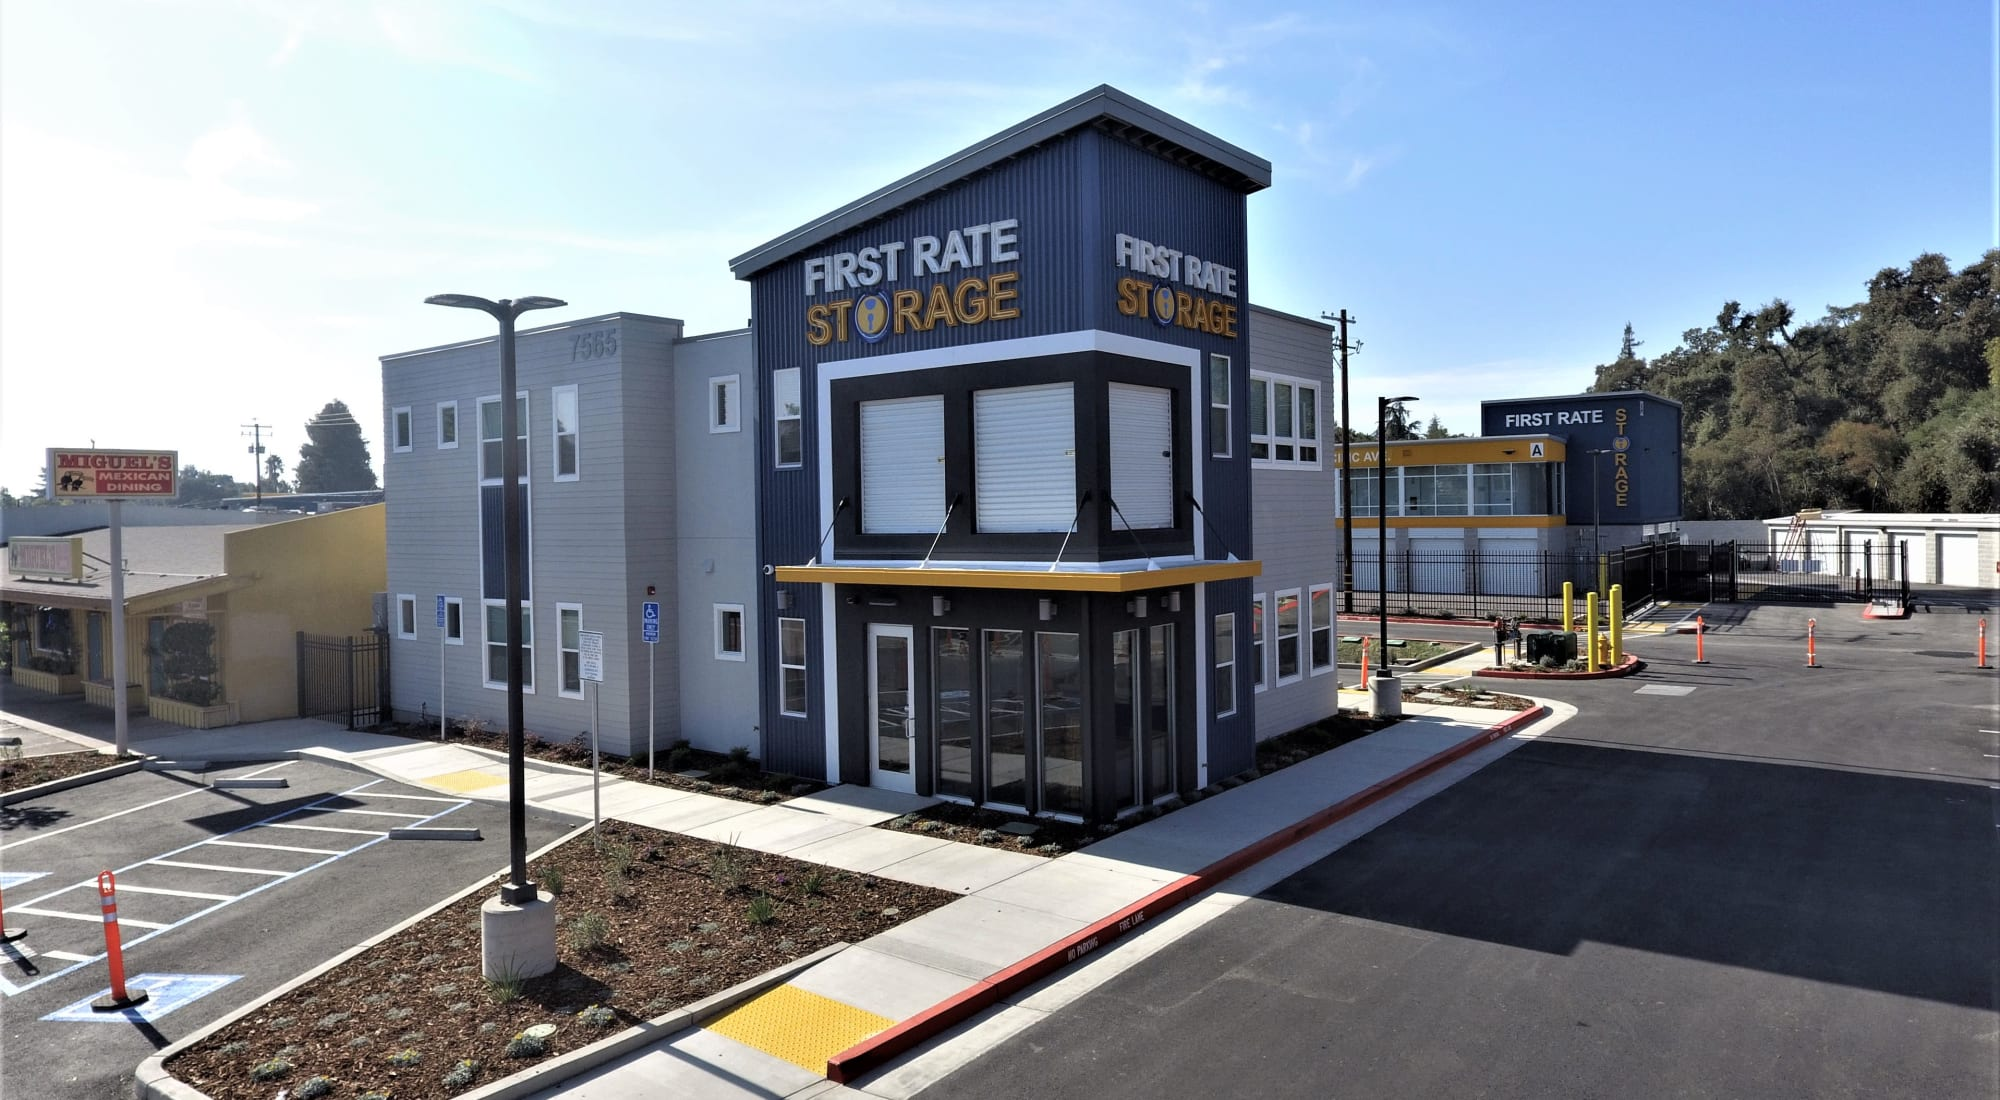 Self storage in First Rate Storage in Stockton, California